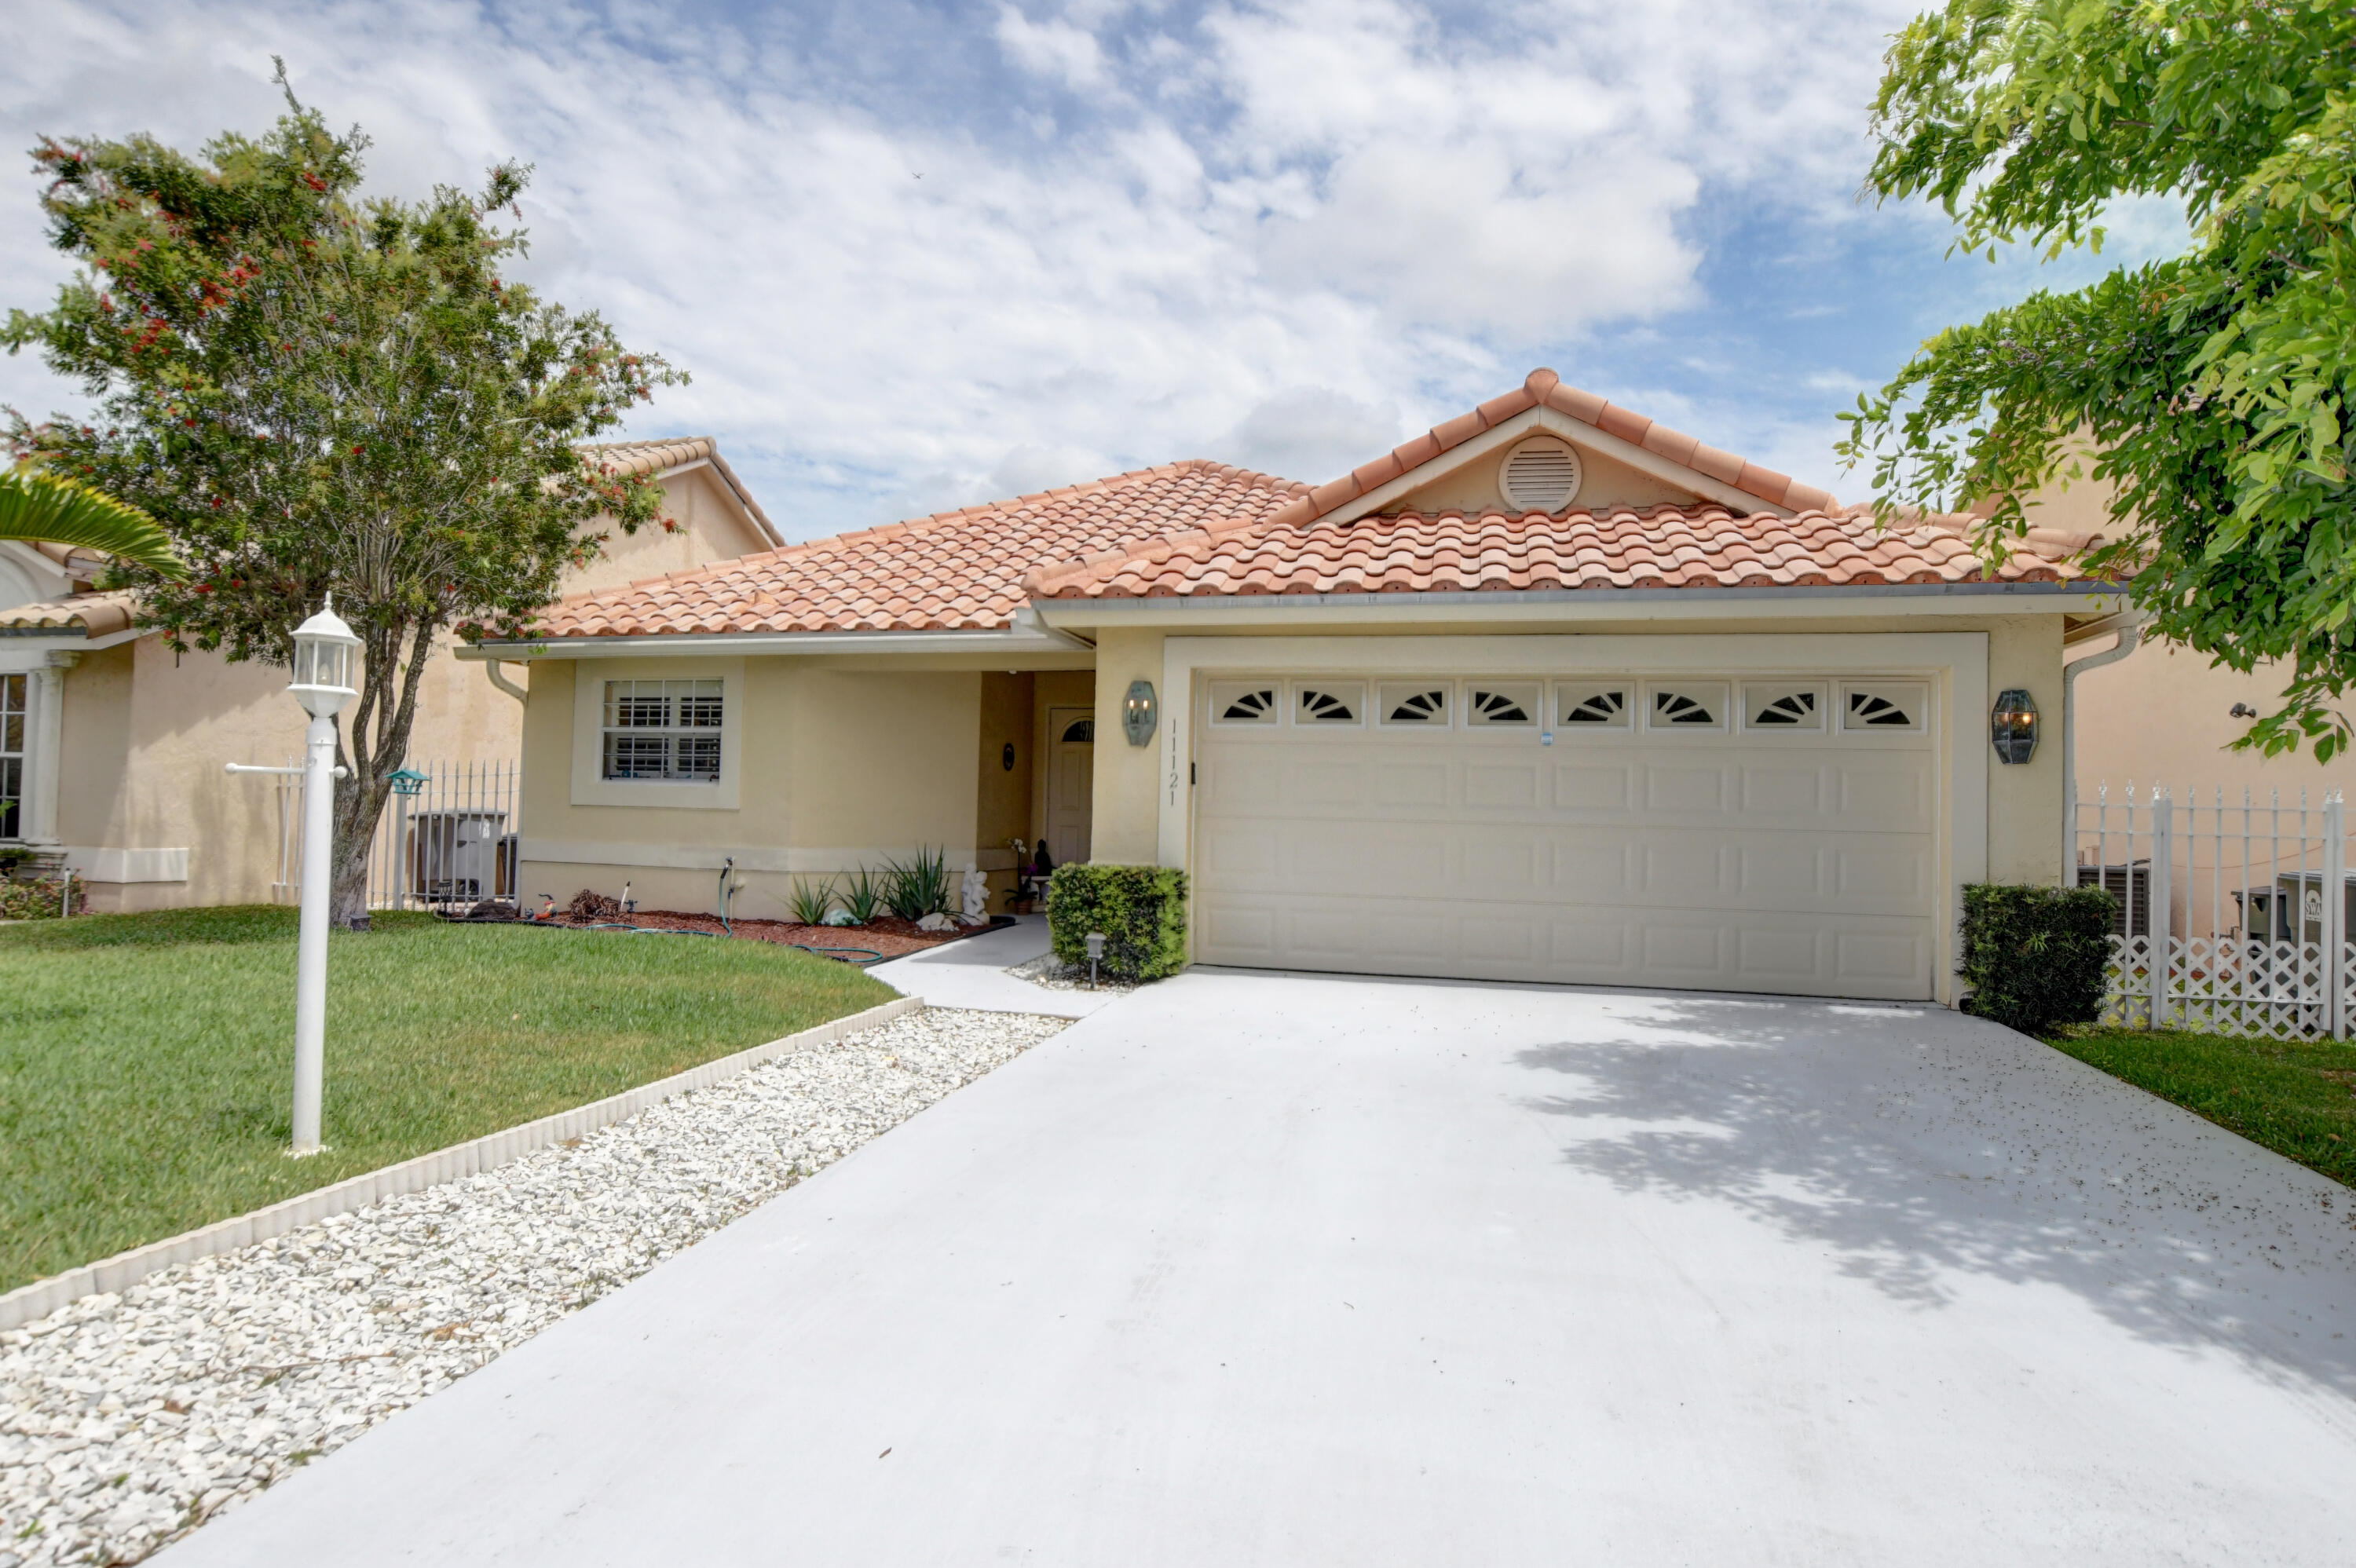 11121  Lakeaire Circle  For Sale 10715970, FL